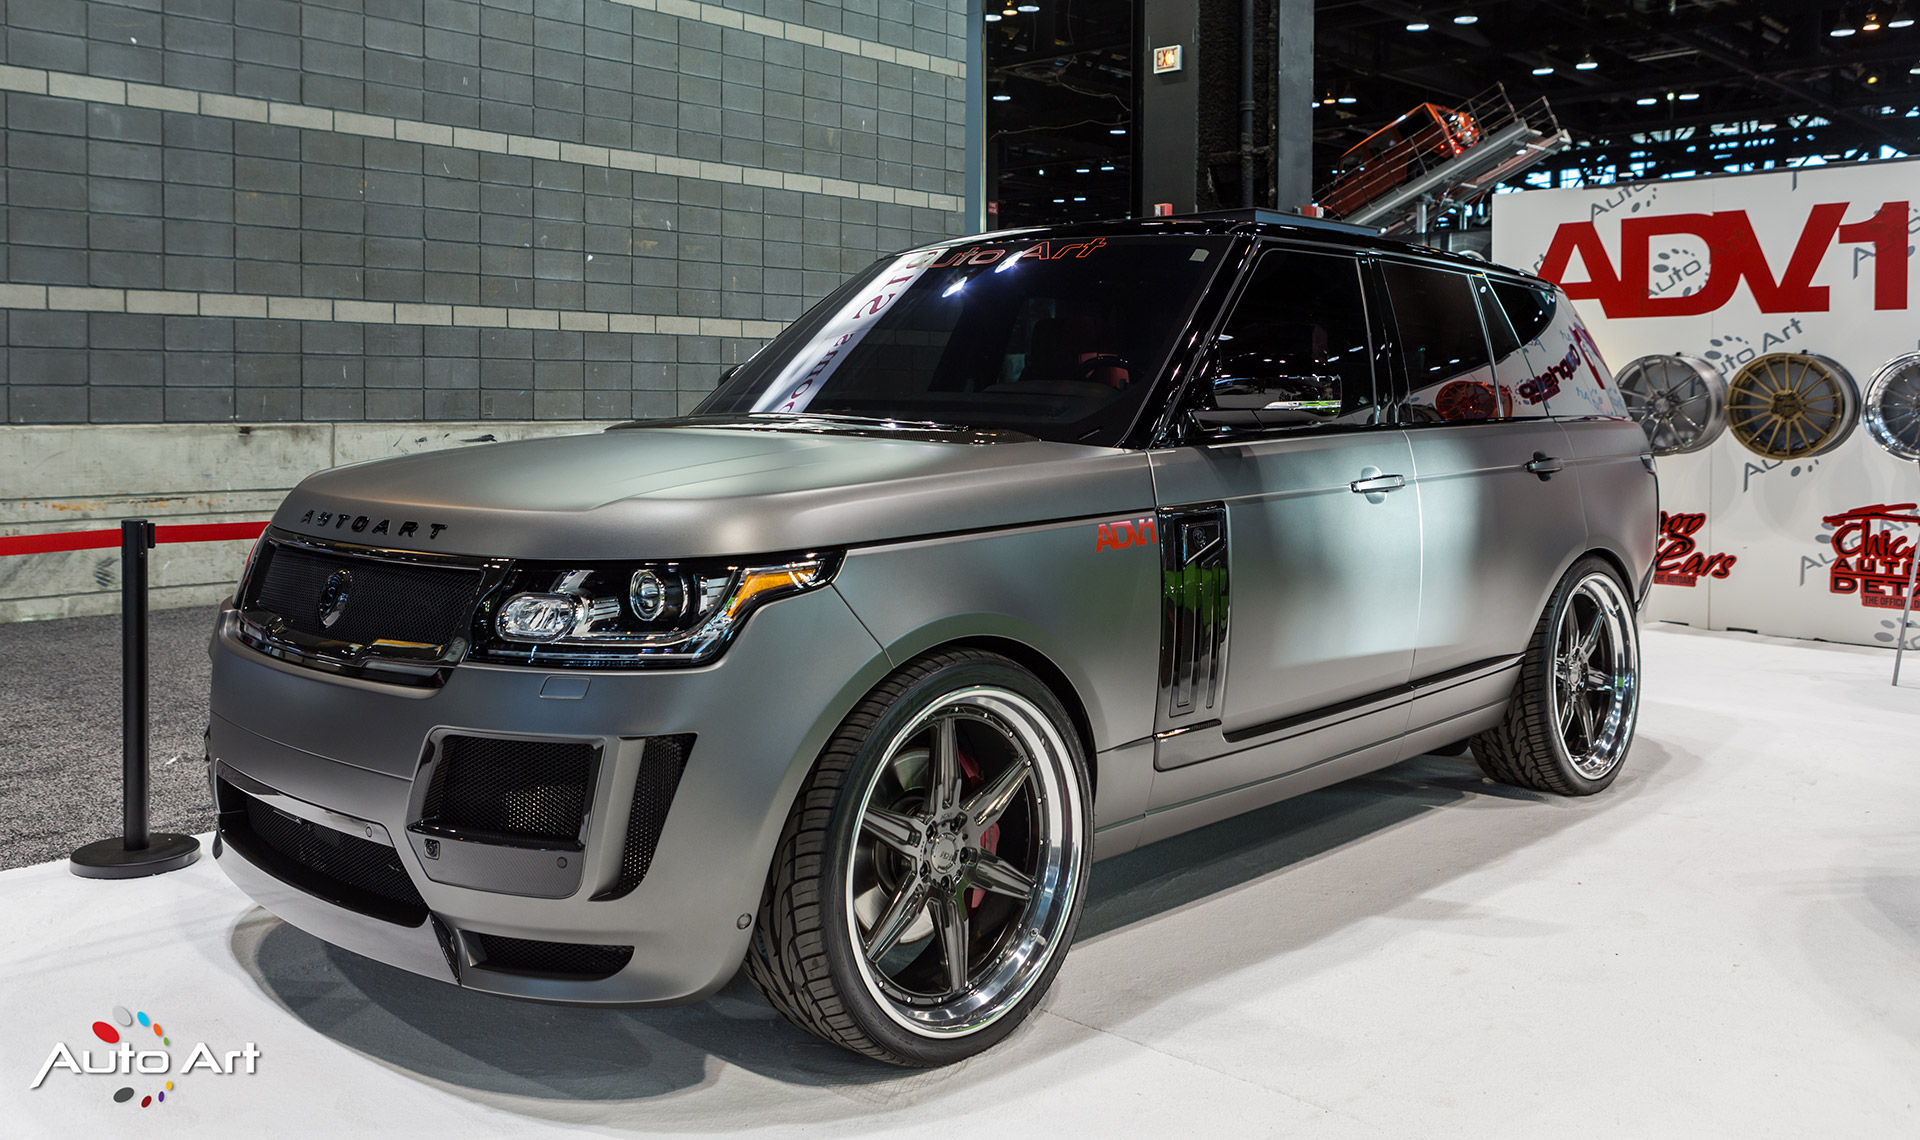 The Auto Art Takes Over The Chicago Auto Show ADV 1 Wheels